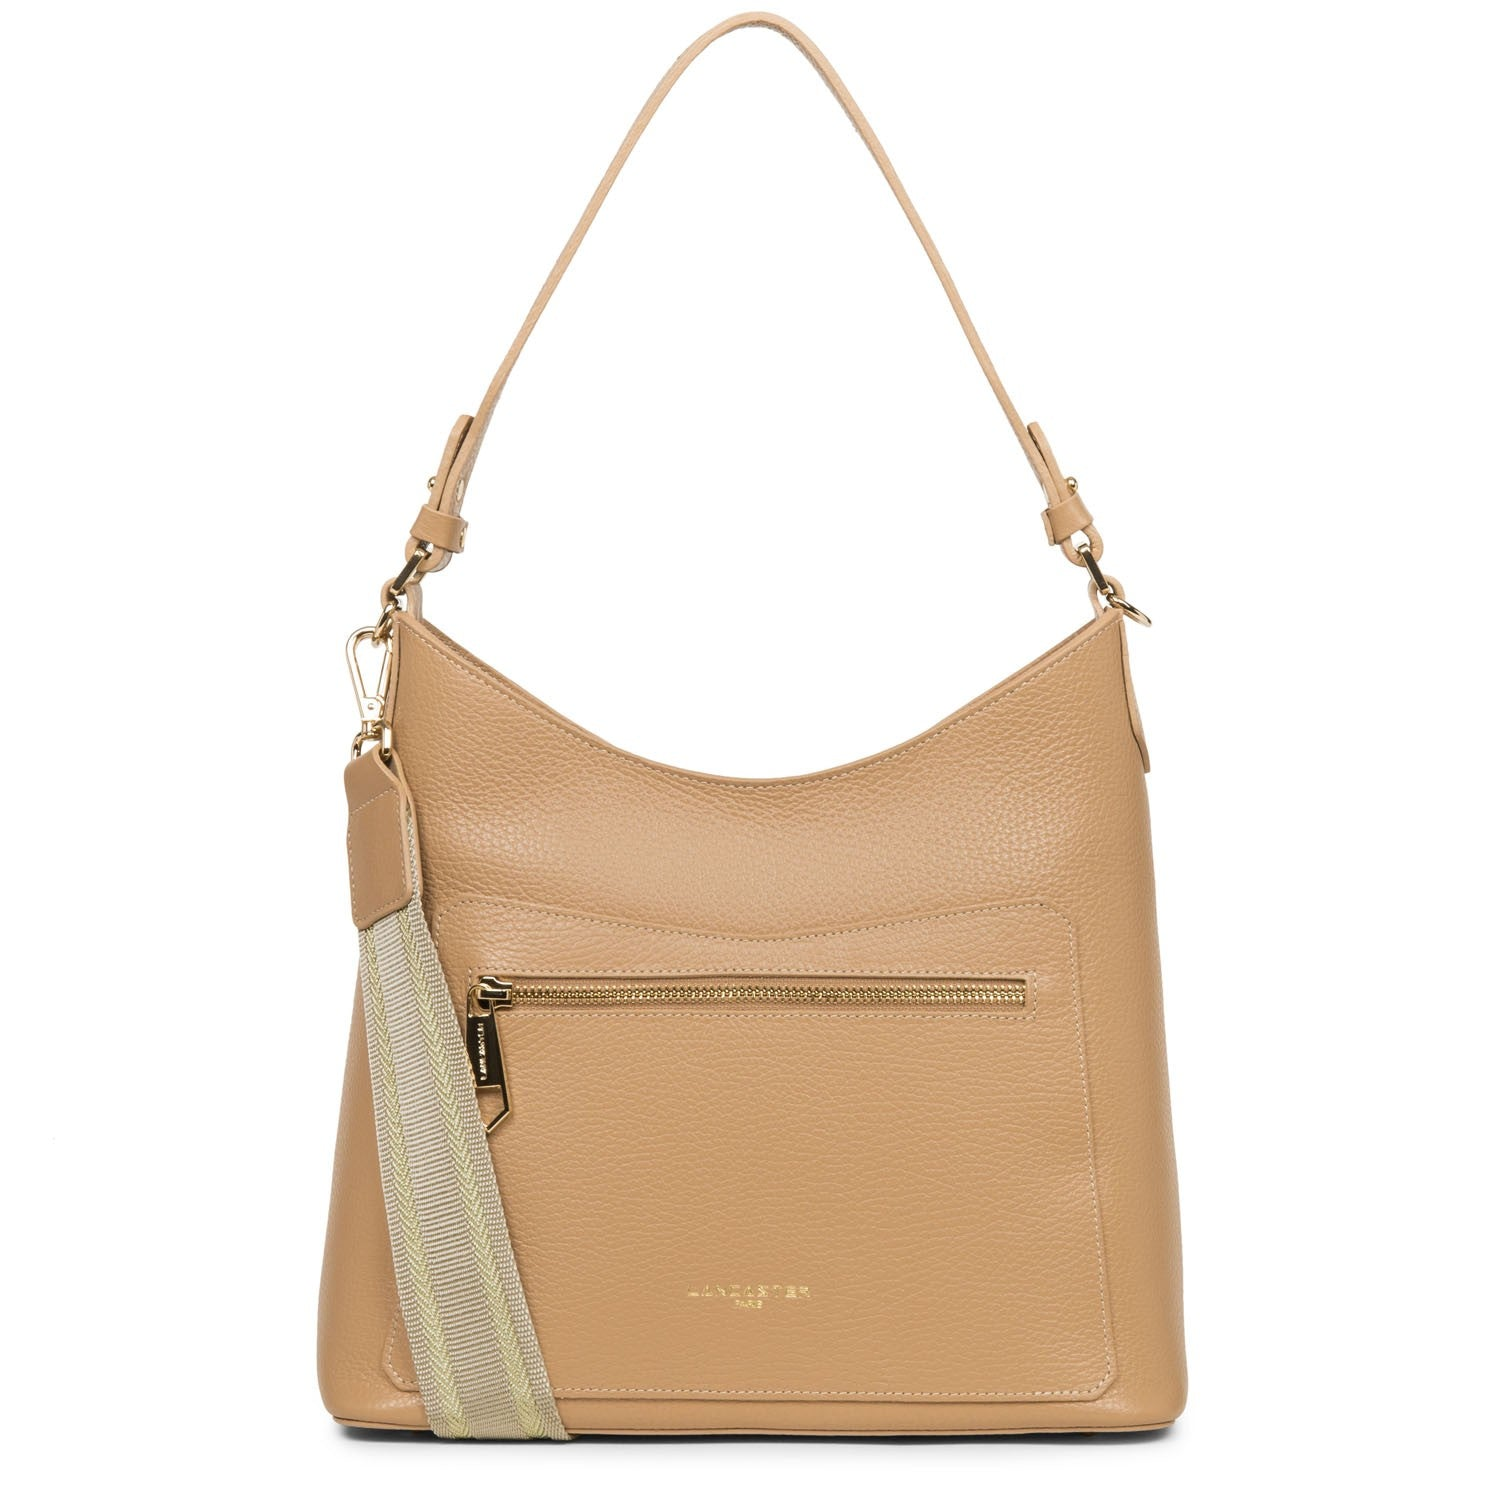 LANCASTER FOULONNE DOUBLE SHOULDER BAG - BEIGE